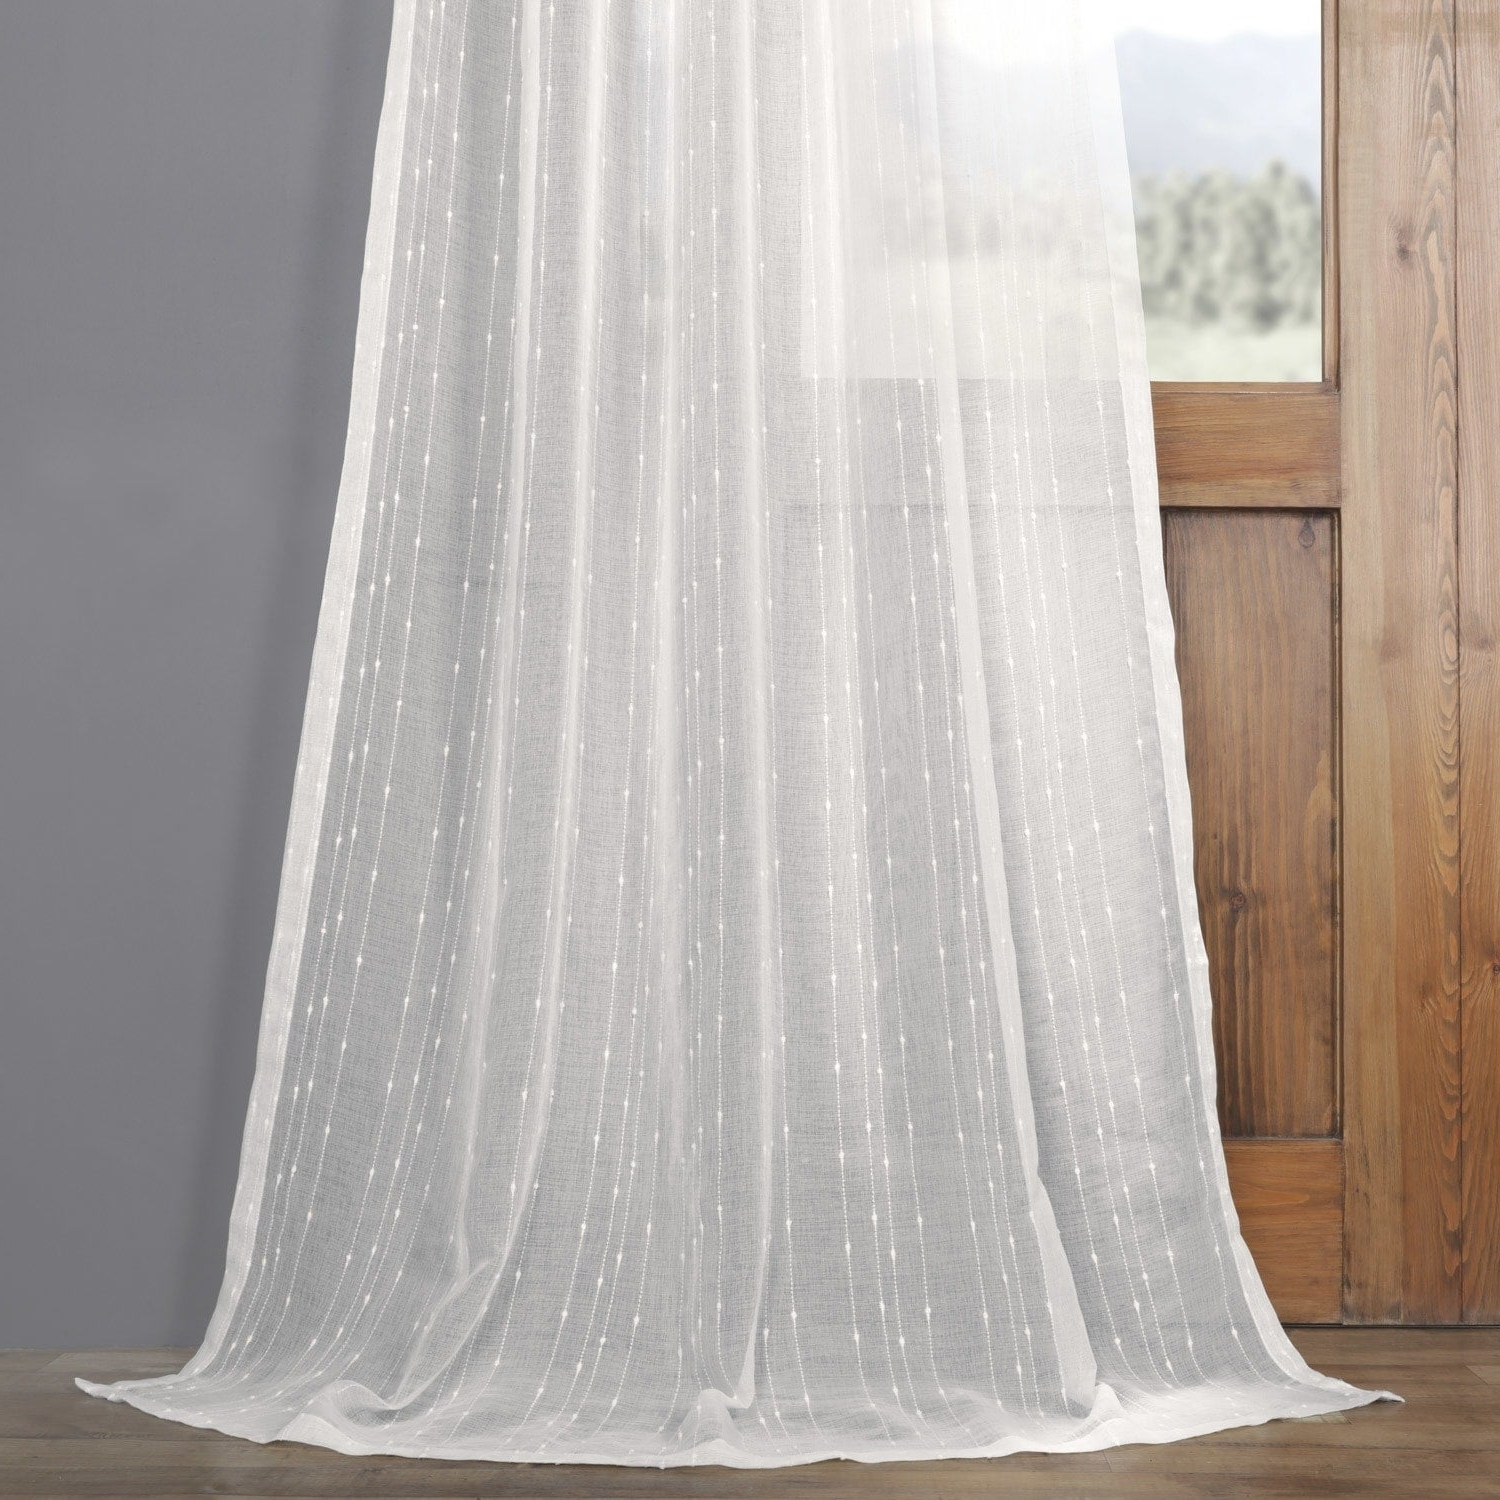 Most Popular Exclusive Fabrics Montpellier Striped Linen Sheer Curtain With Regard To Montpellier Striped Linen Sheer Curtains (View 5 of 20)